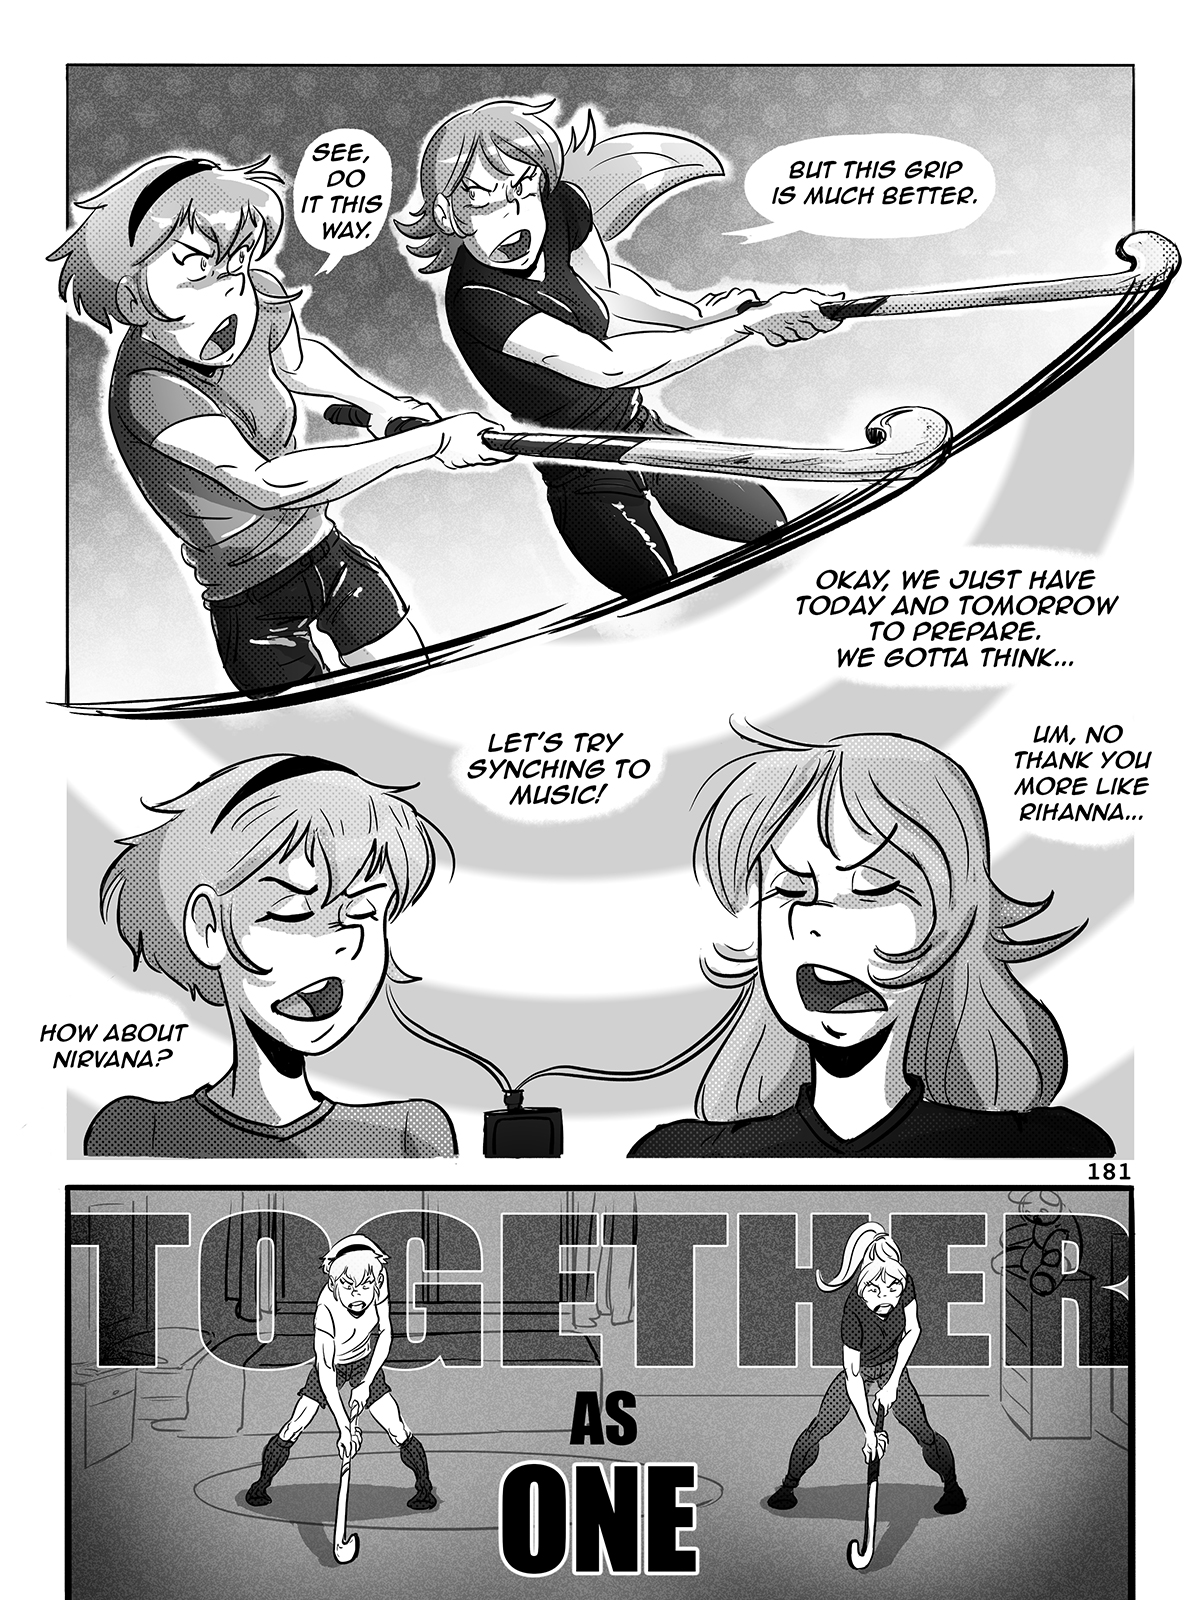 Hockey, Love, & GUTS! – Chapter 8 – Page 181